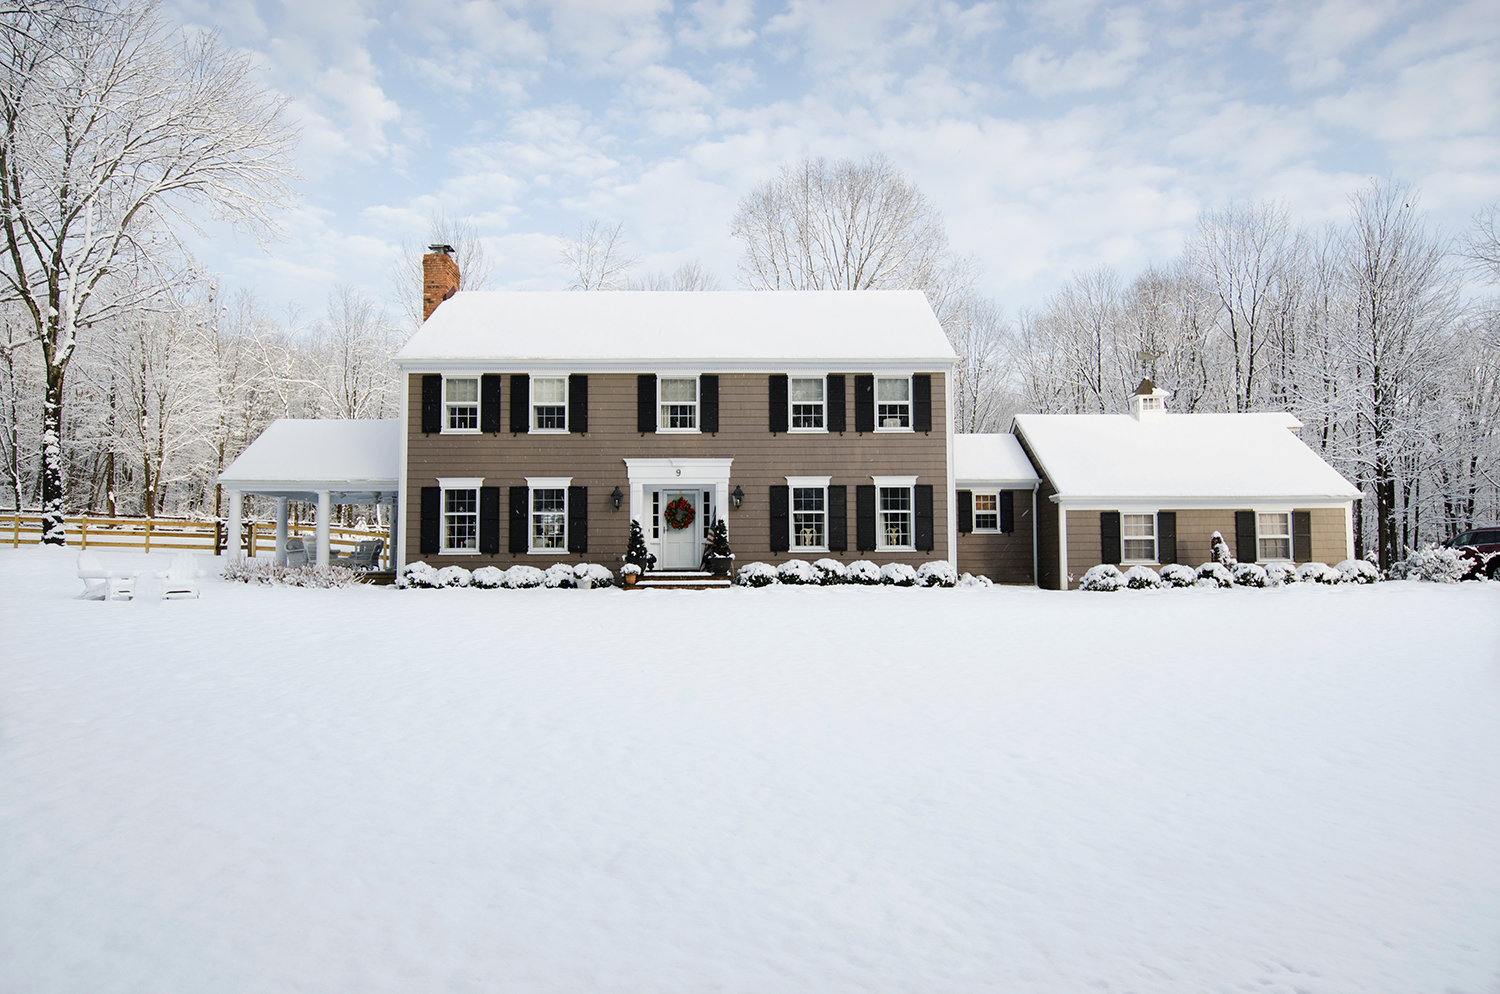 Colonial House Covered in Snow During Christmas